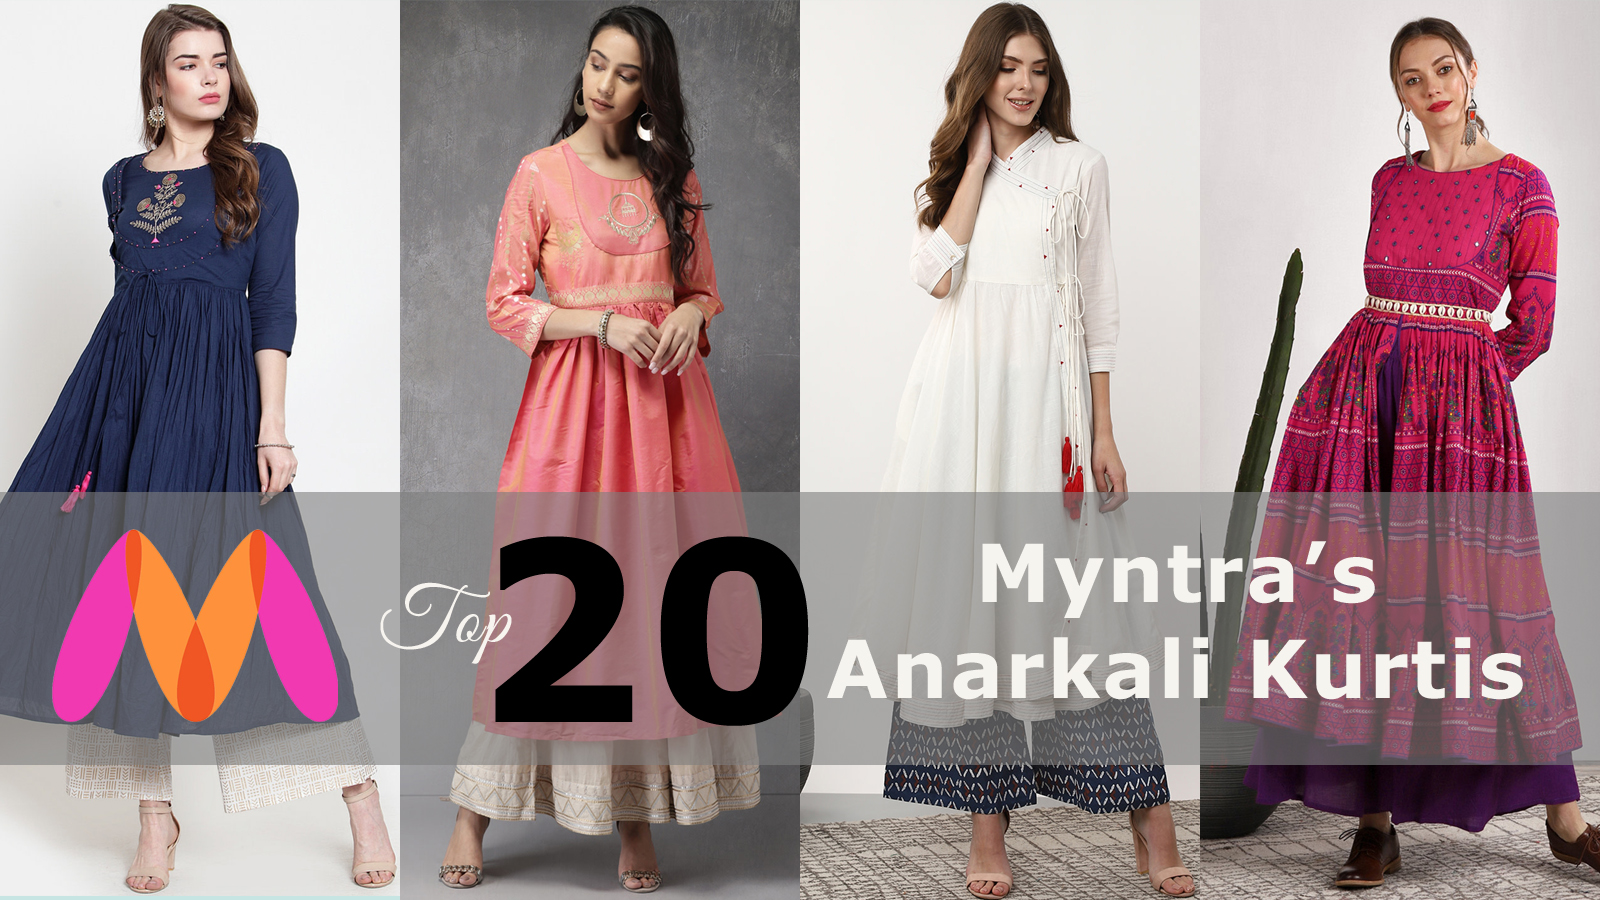 Top 20 Myntra's Anarkali Kurtis to Dazzle Up